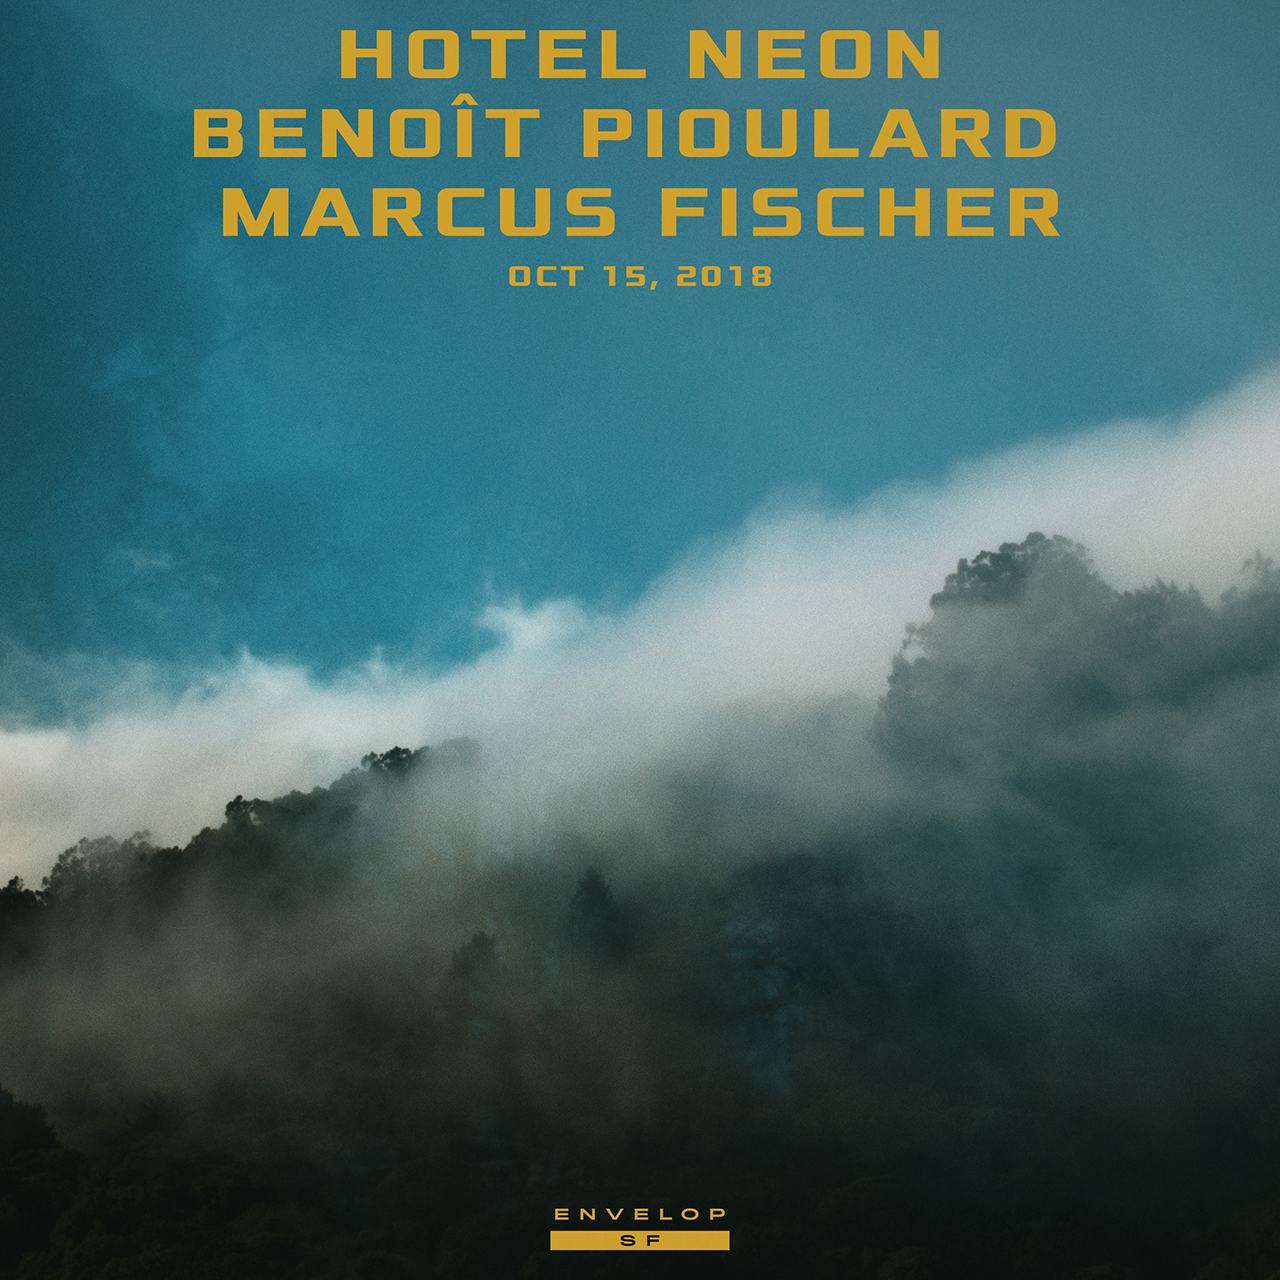 Hotel Neon | Benoît Pioulard | Marcus Fischer - Envelop Showcase   Mon October 15, 2018 | At Envelop SF | 7:30 PM doors